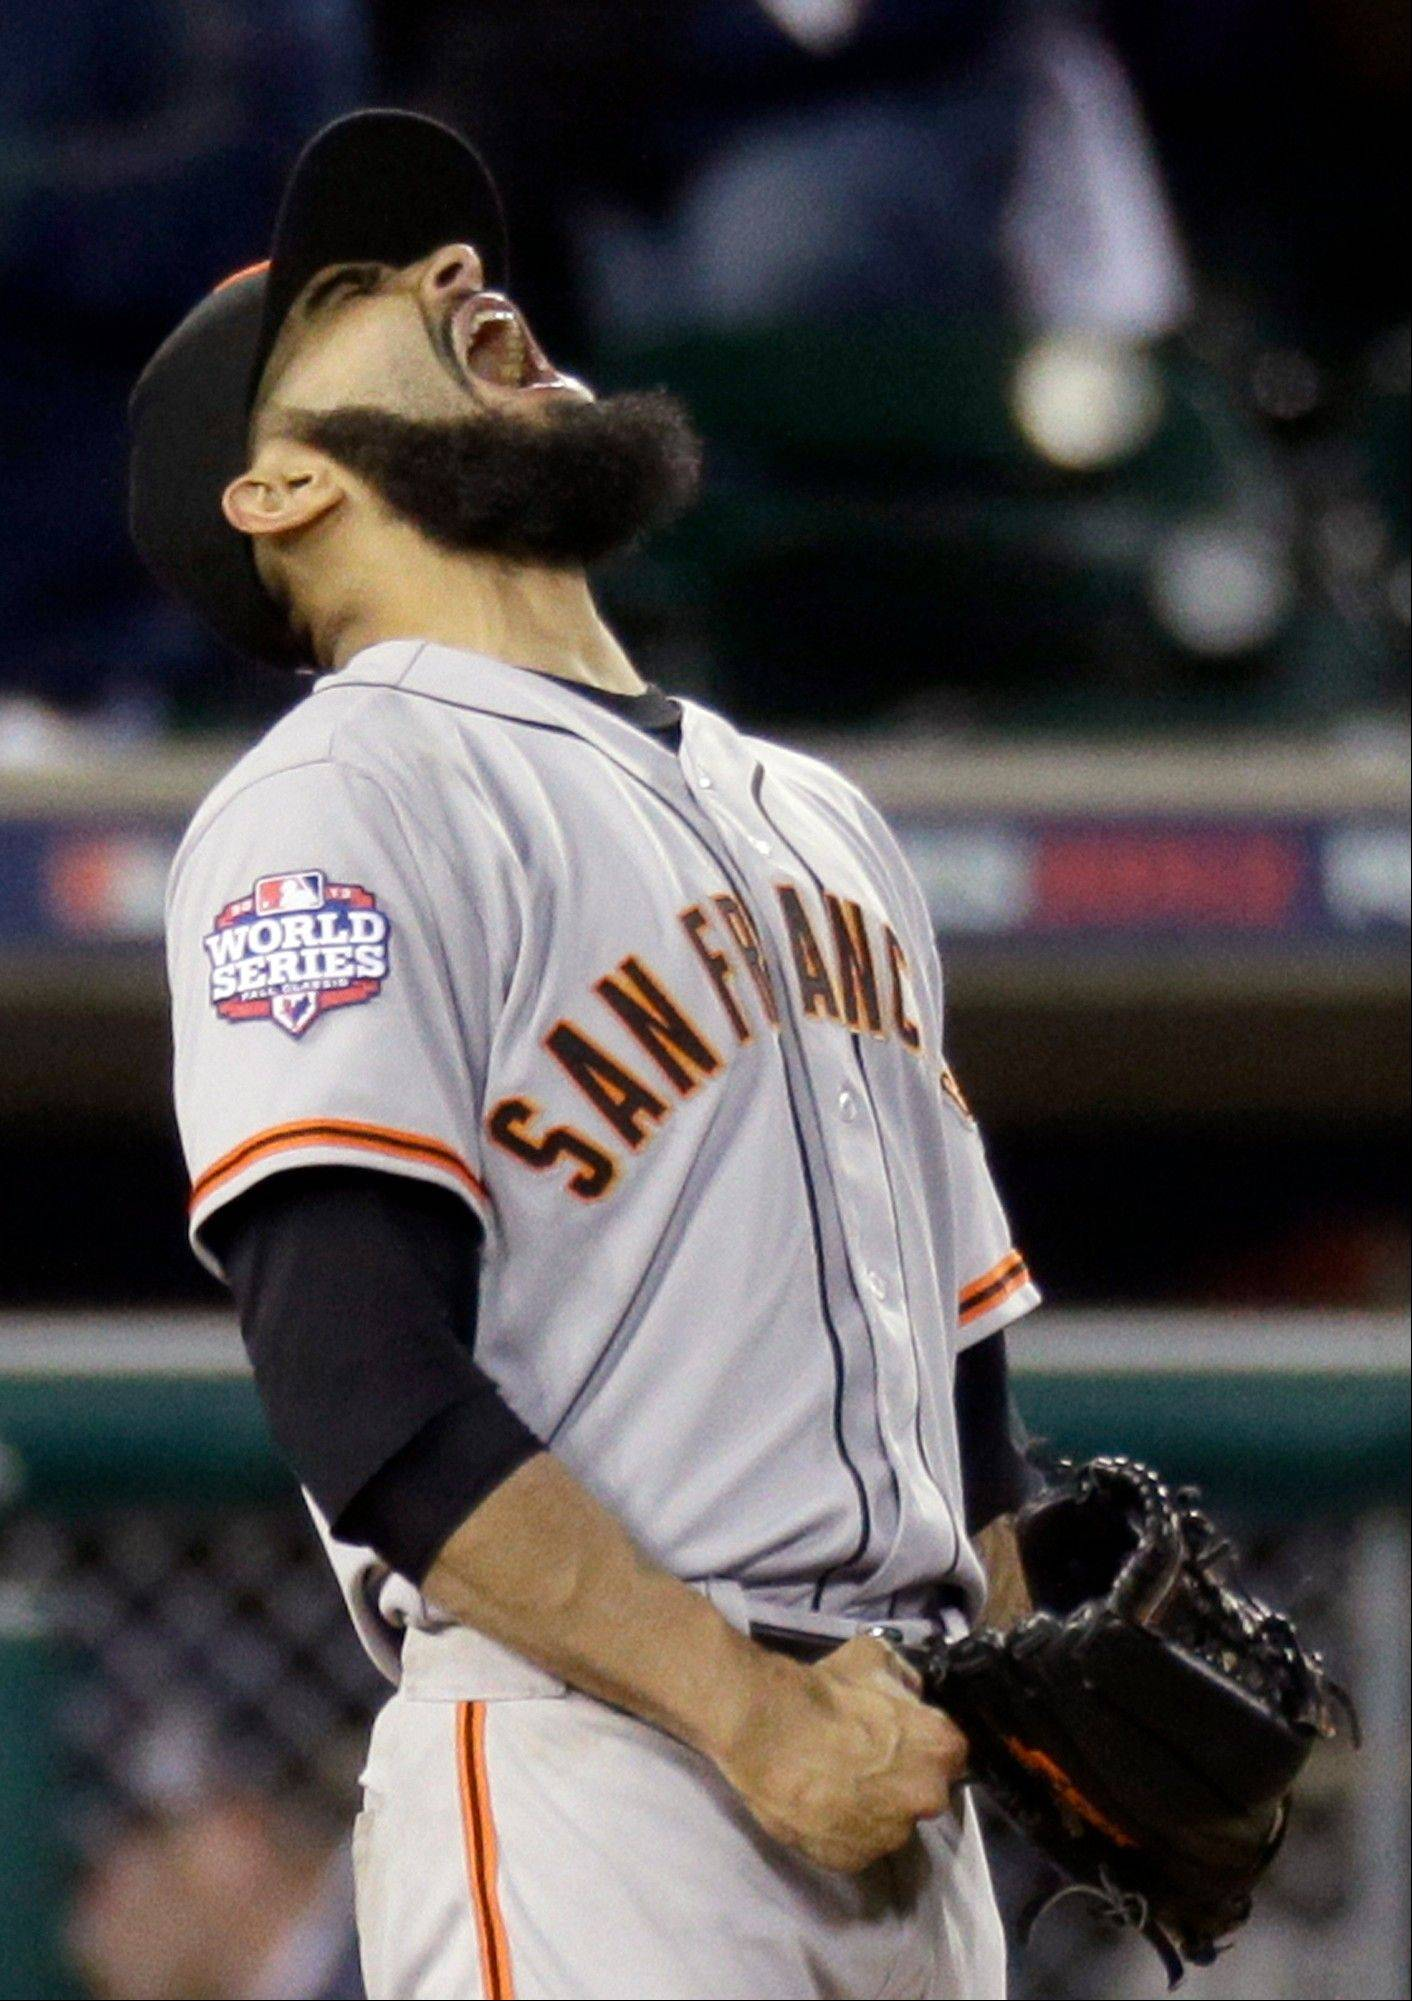 San Francisco Giants relief pitcher Sergio Romo celebrates after San Francisco Giants beat Detroit Tigers 2-0 in Game 3 of baseball's World Series Saturday, Oct. 27, 2012, in Detroit. The Giants lead the series 3-0. (AP Photo/Carlos Osorio)